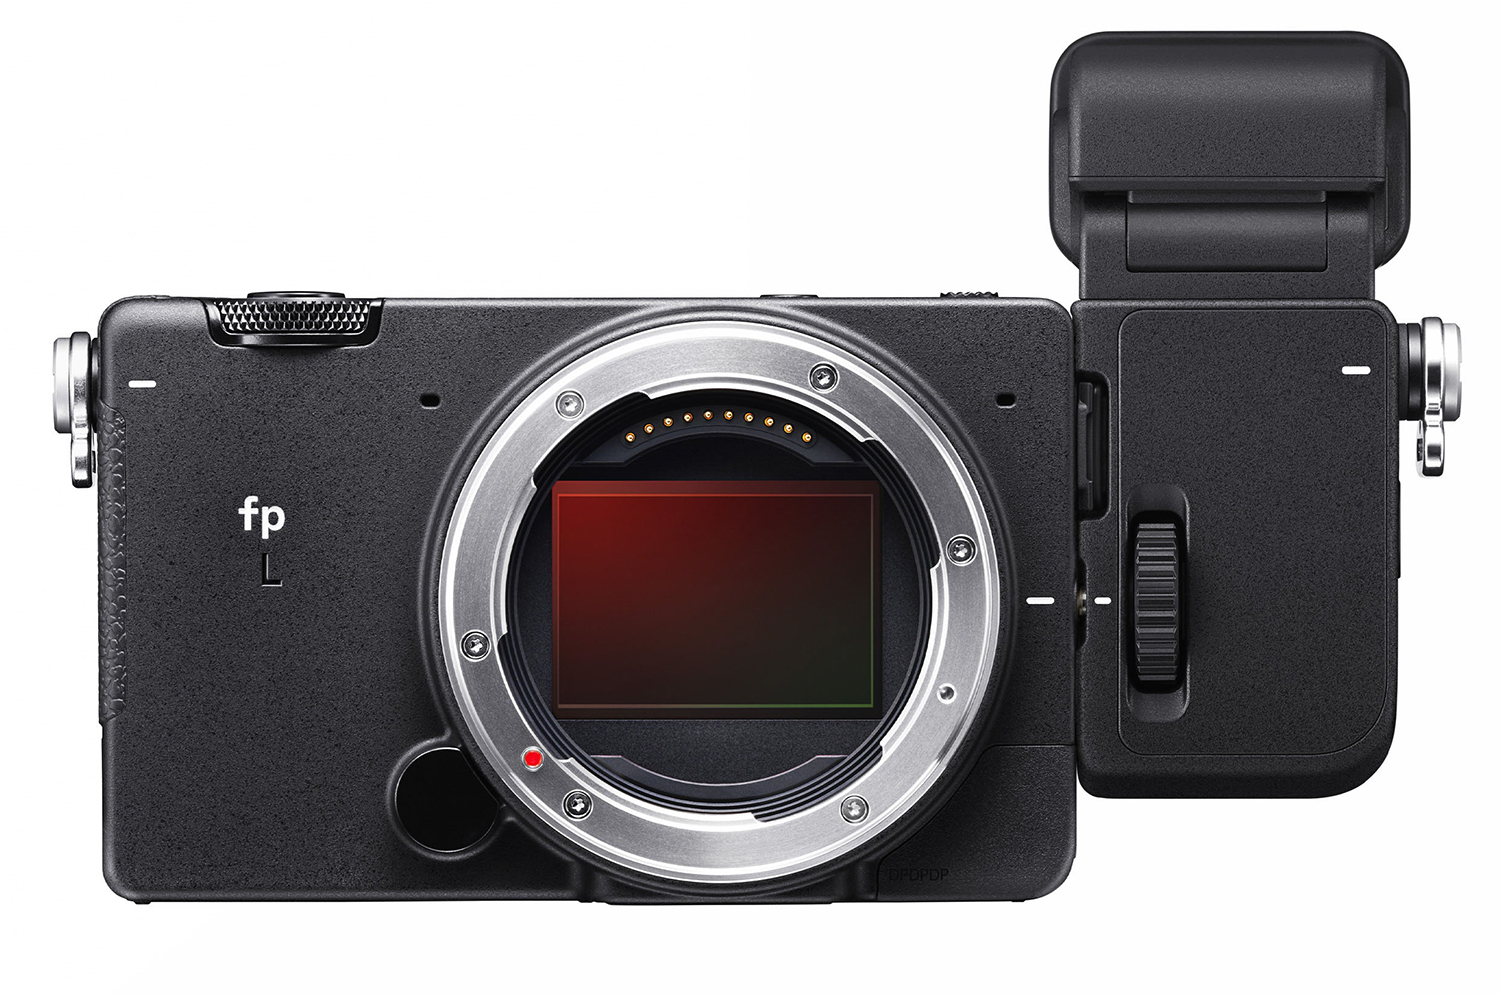 Photo of Sigma fp L camera